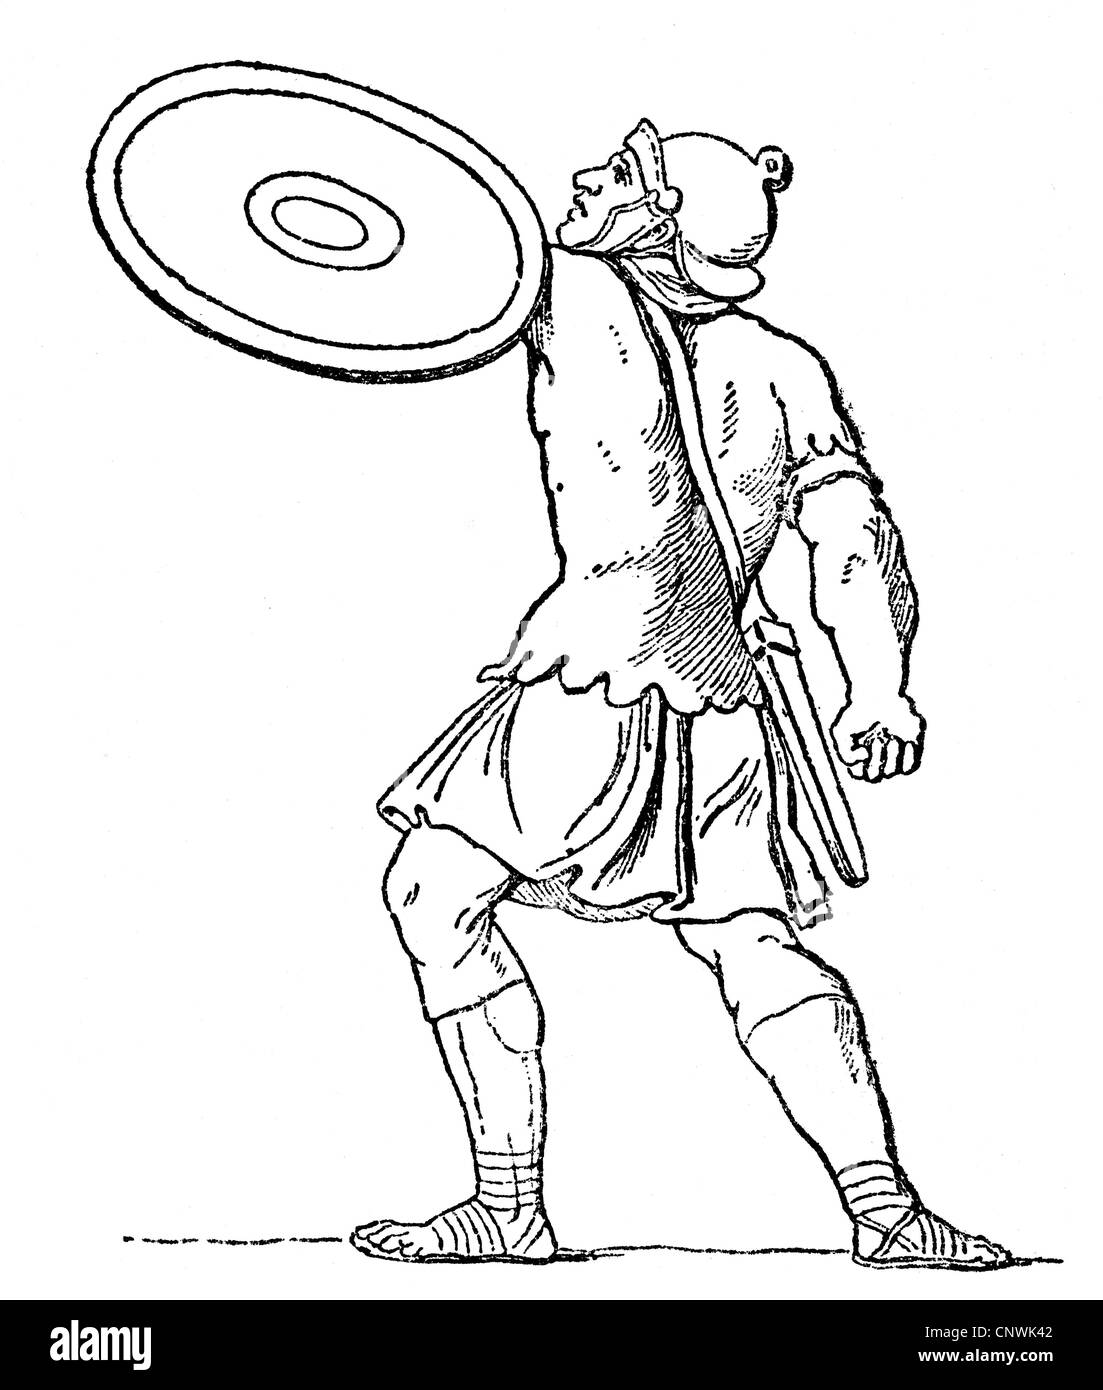 military, ancient world, Roman Empire, Roman soldier, wood engraving, 19th century, after an ancient depiction, - Stock Image